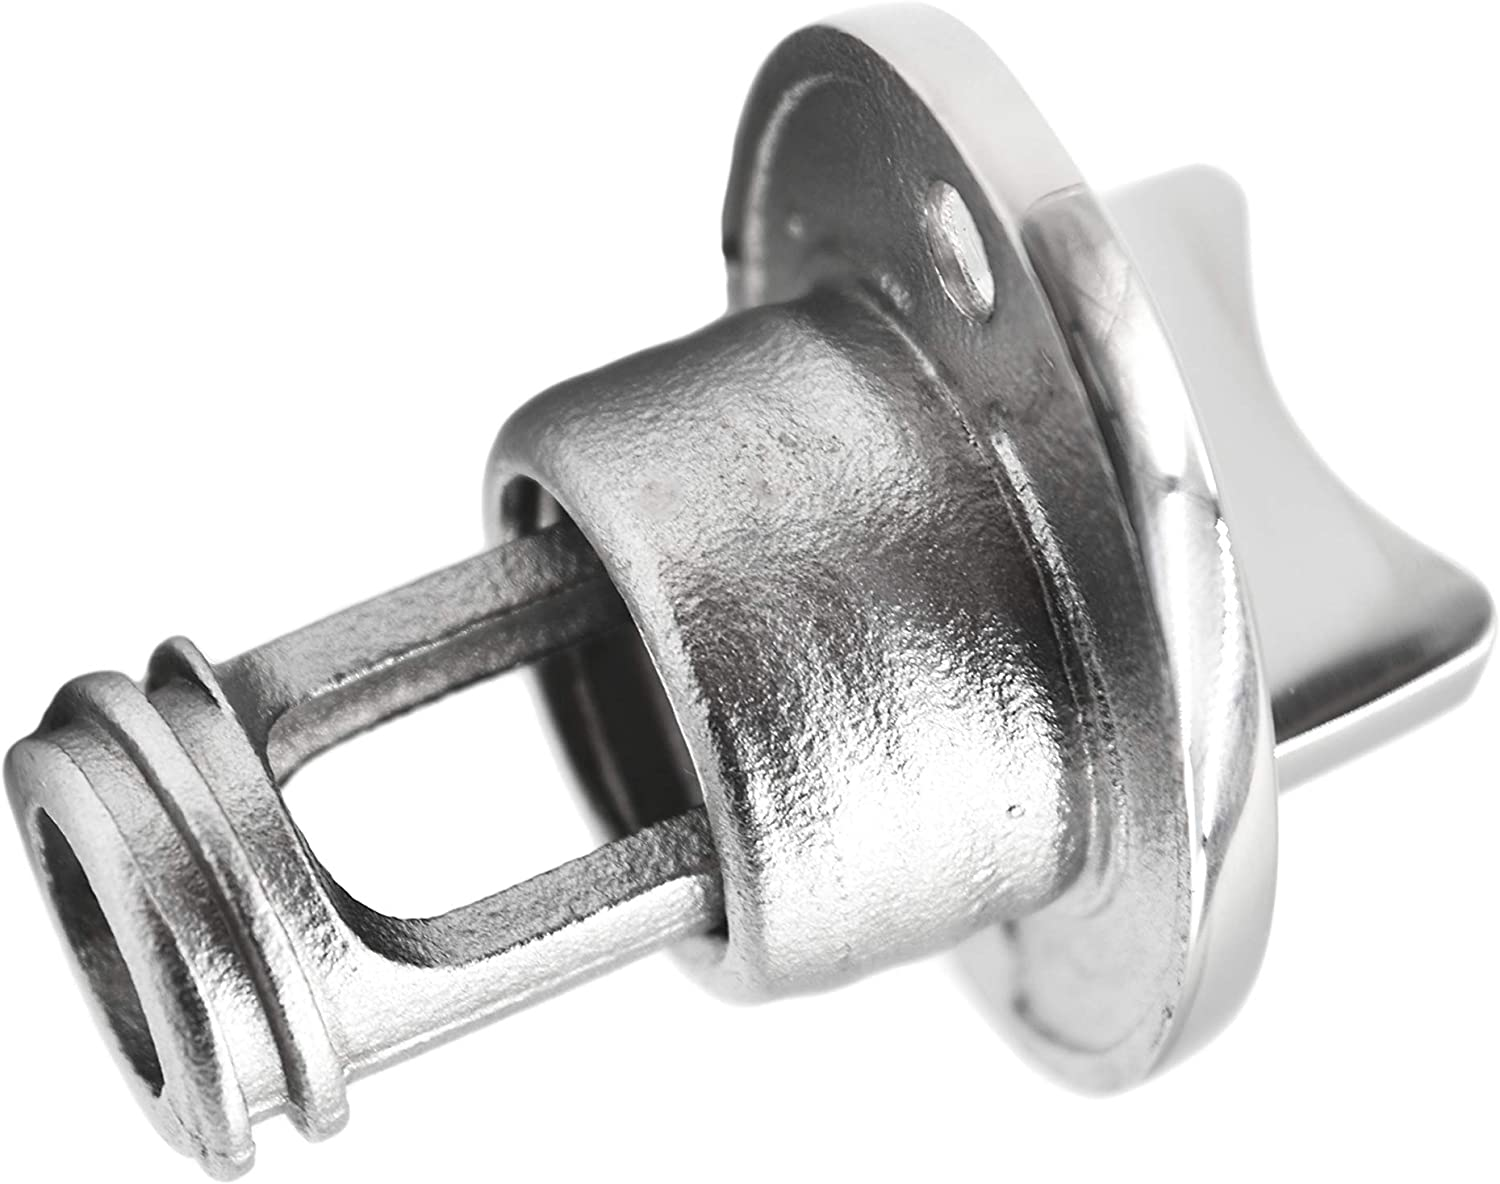 MARINE CITY 316 Stainless Steel Oval Drain Plug Fits 1 Inch Hole Thread for 3//4 Inches